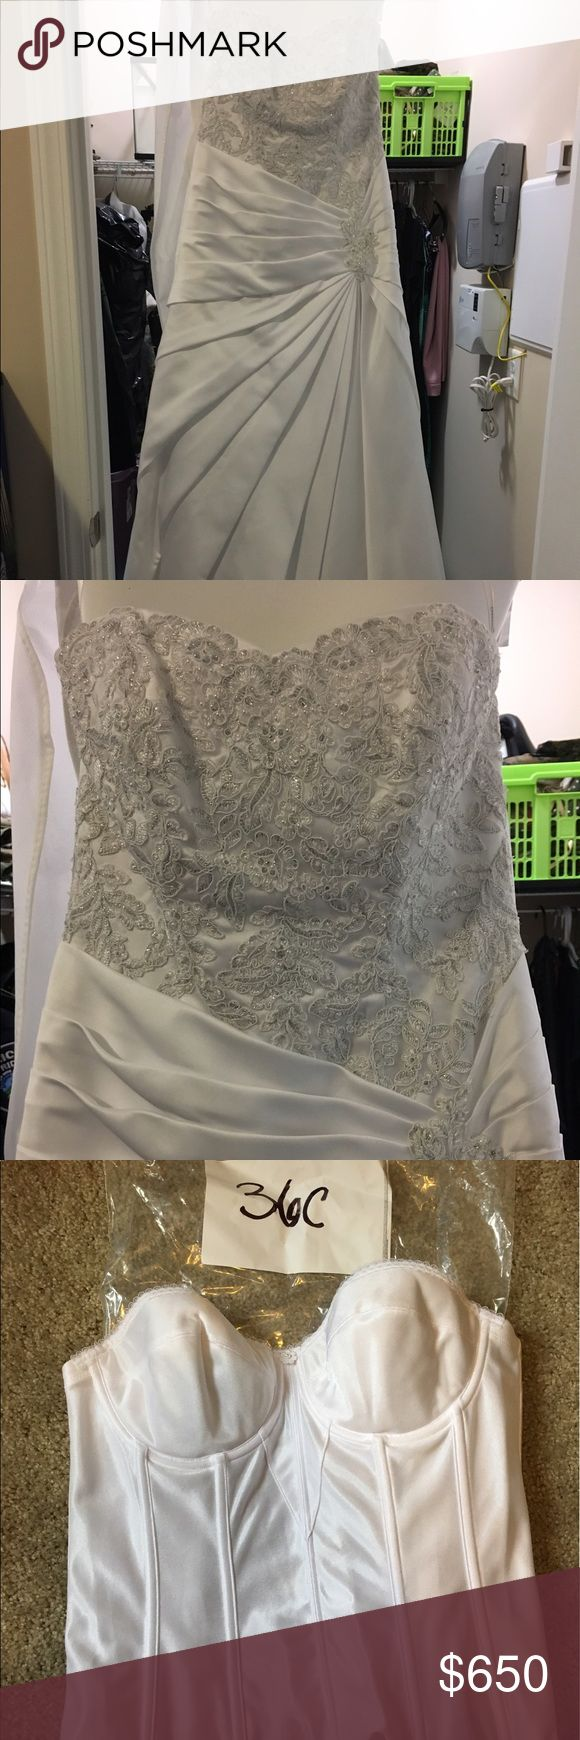 "Davids Bridal Wedding Dress Size 6, slight alterations; bust 29in, waist 32in, hips 40in. Includes veil, silk corset (36C), fit and flare slip (sz 10), comes in dress bag. Only worn once in church, very clean. Fit a 5'7"" woman with heels. Smoke free, animal free home. David's Bridal Dresses Wedding"